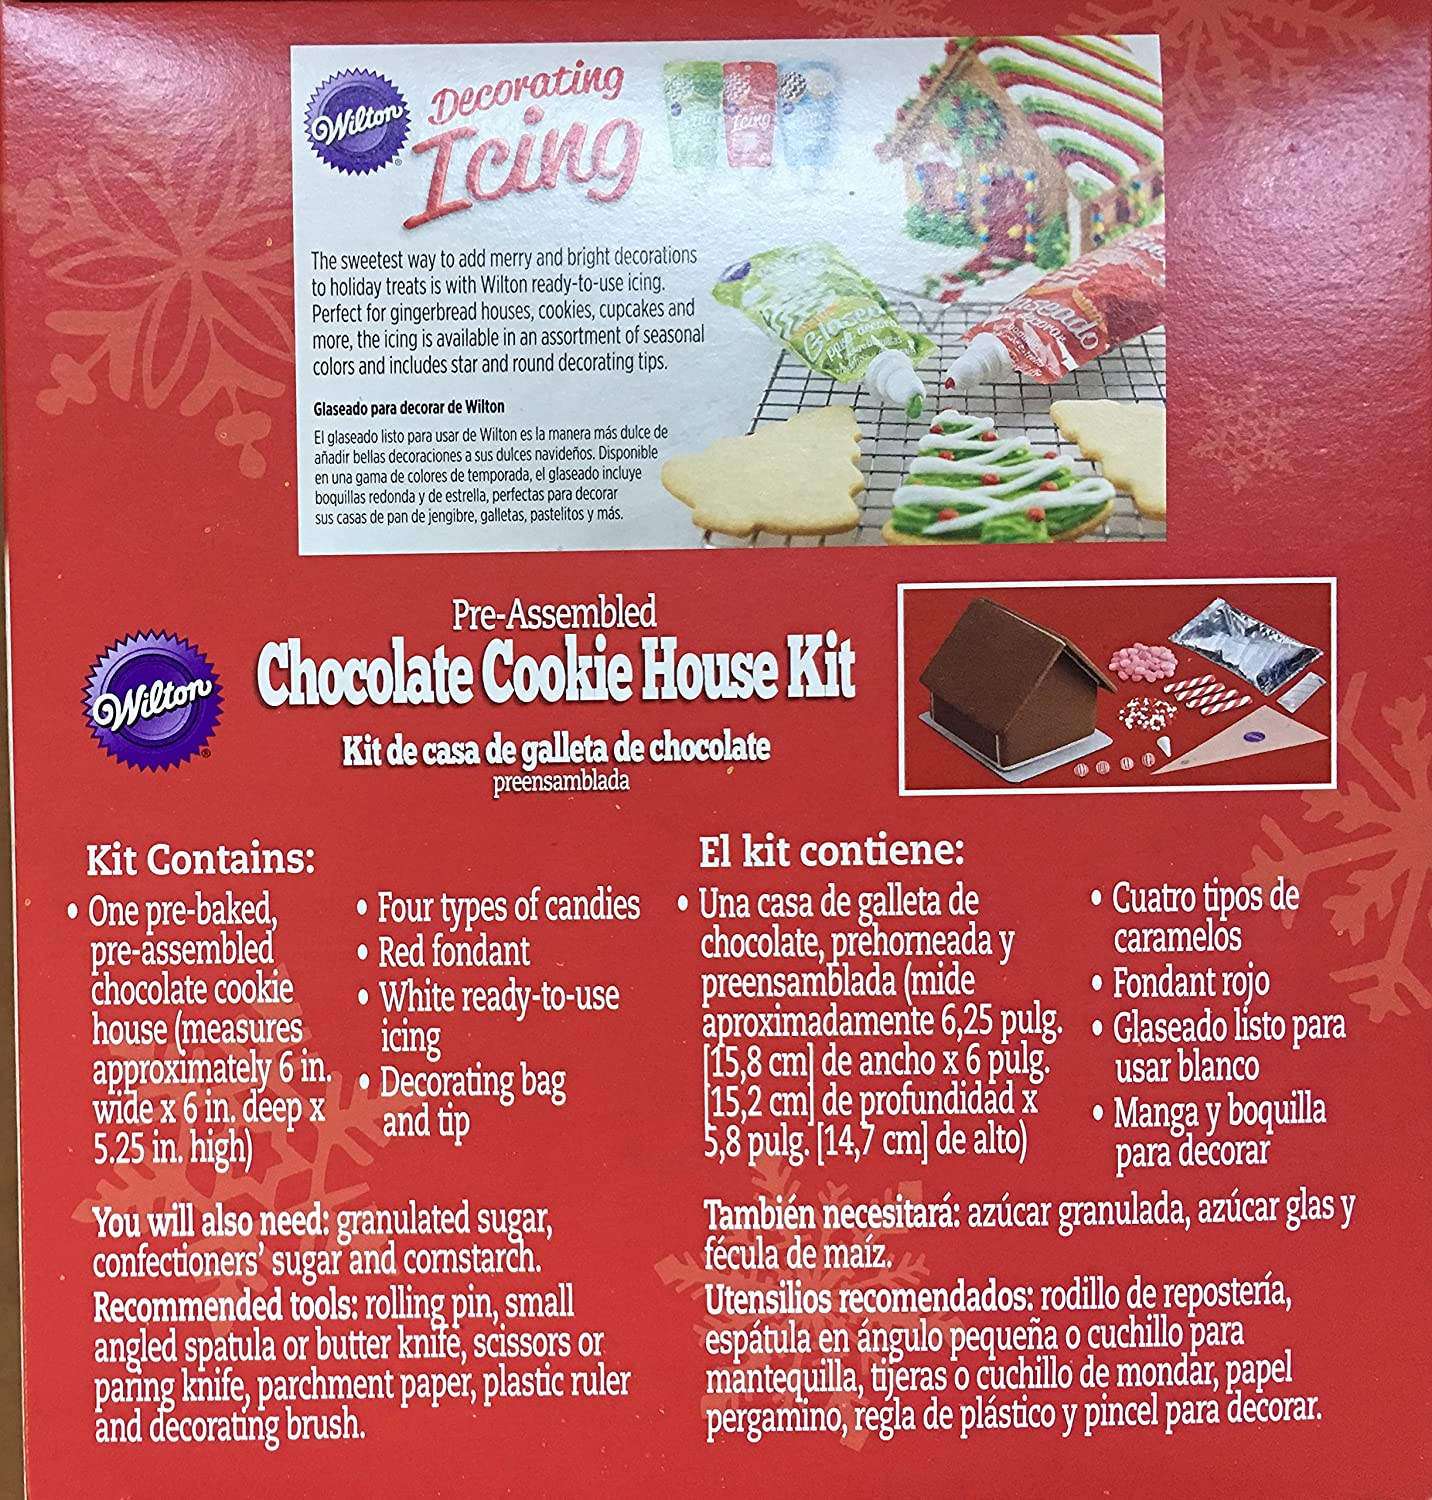 Amazon.com : Wilton Pre-Assembled Chocolate Cookie House Kit including Free Online Cake Decorating Class : Grocery & Gourmet Food